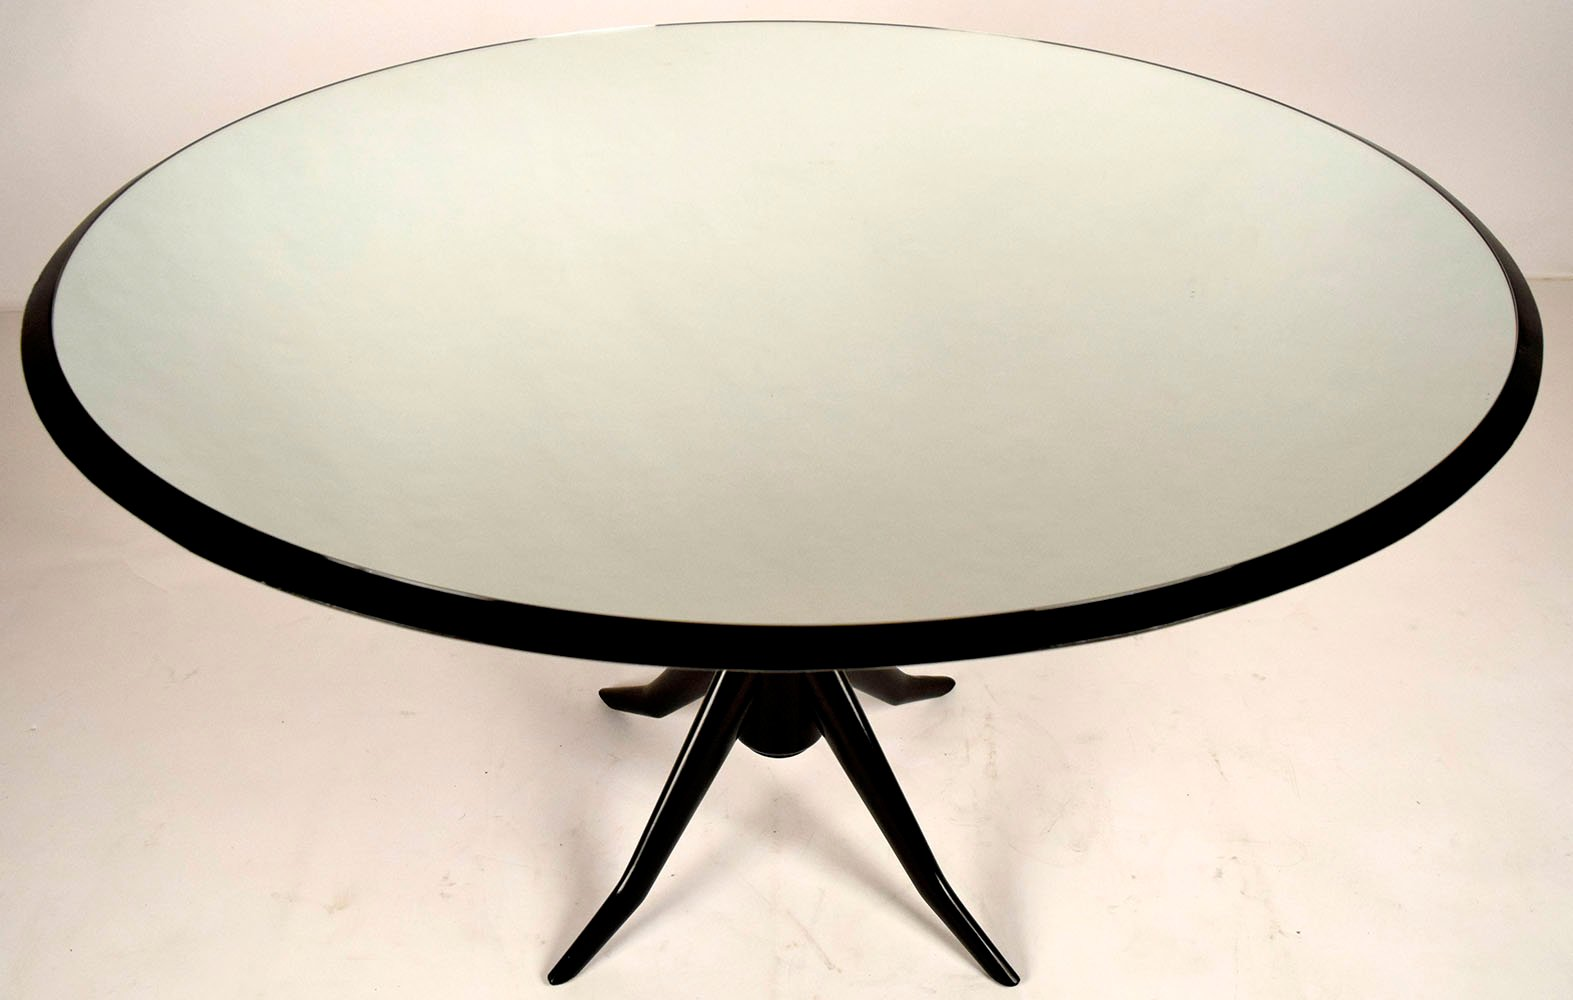 Vintage Round Dining Table With Mirrored Top